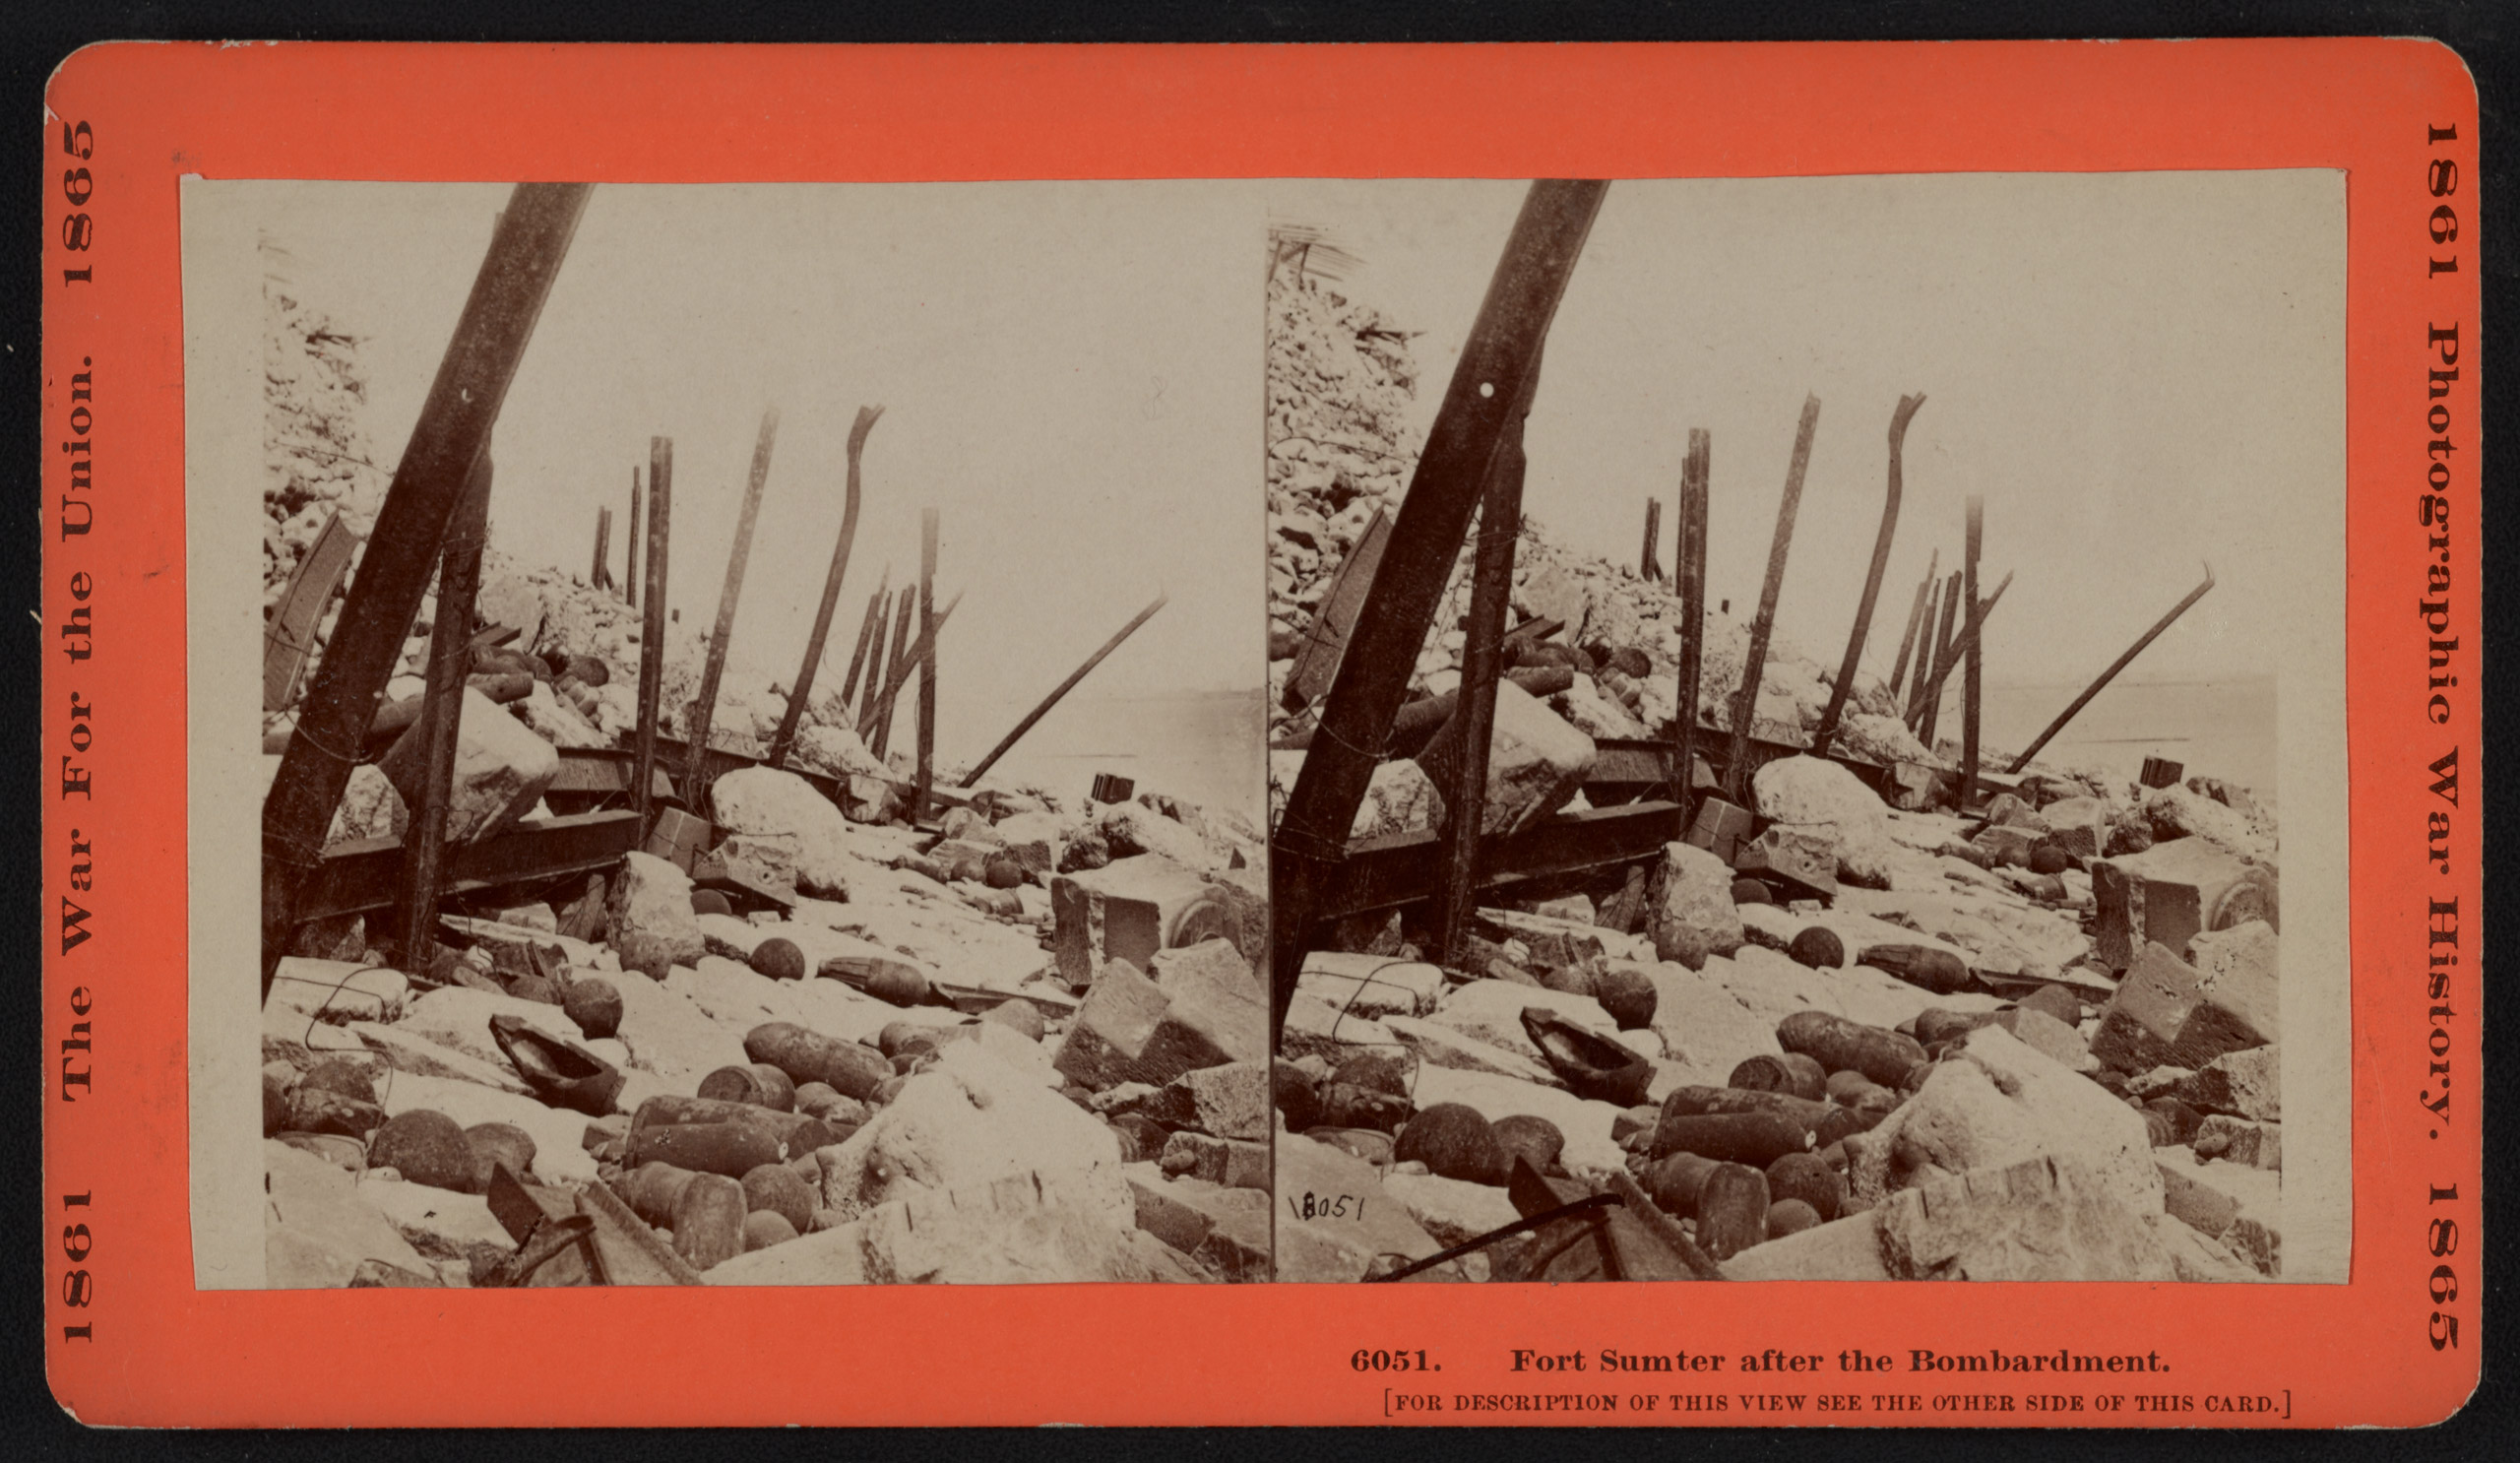 Fort Sumter after the bombardment. Stereograph shows ruins of artillery among the rocks on the exterior of Fort Sumter. From the Civil War Photograph Collection.